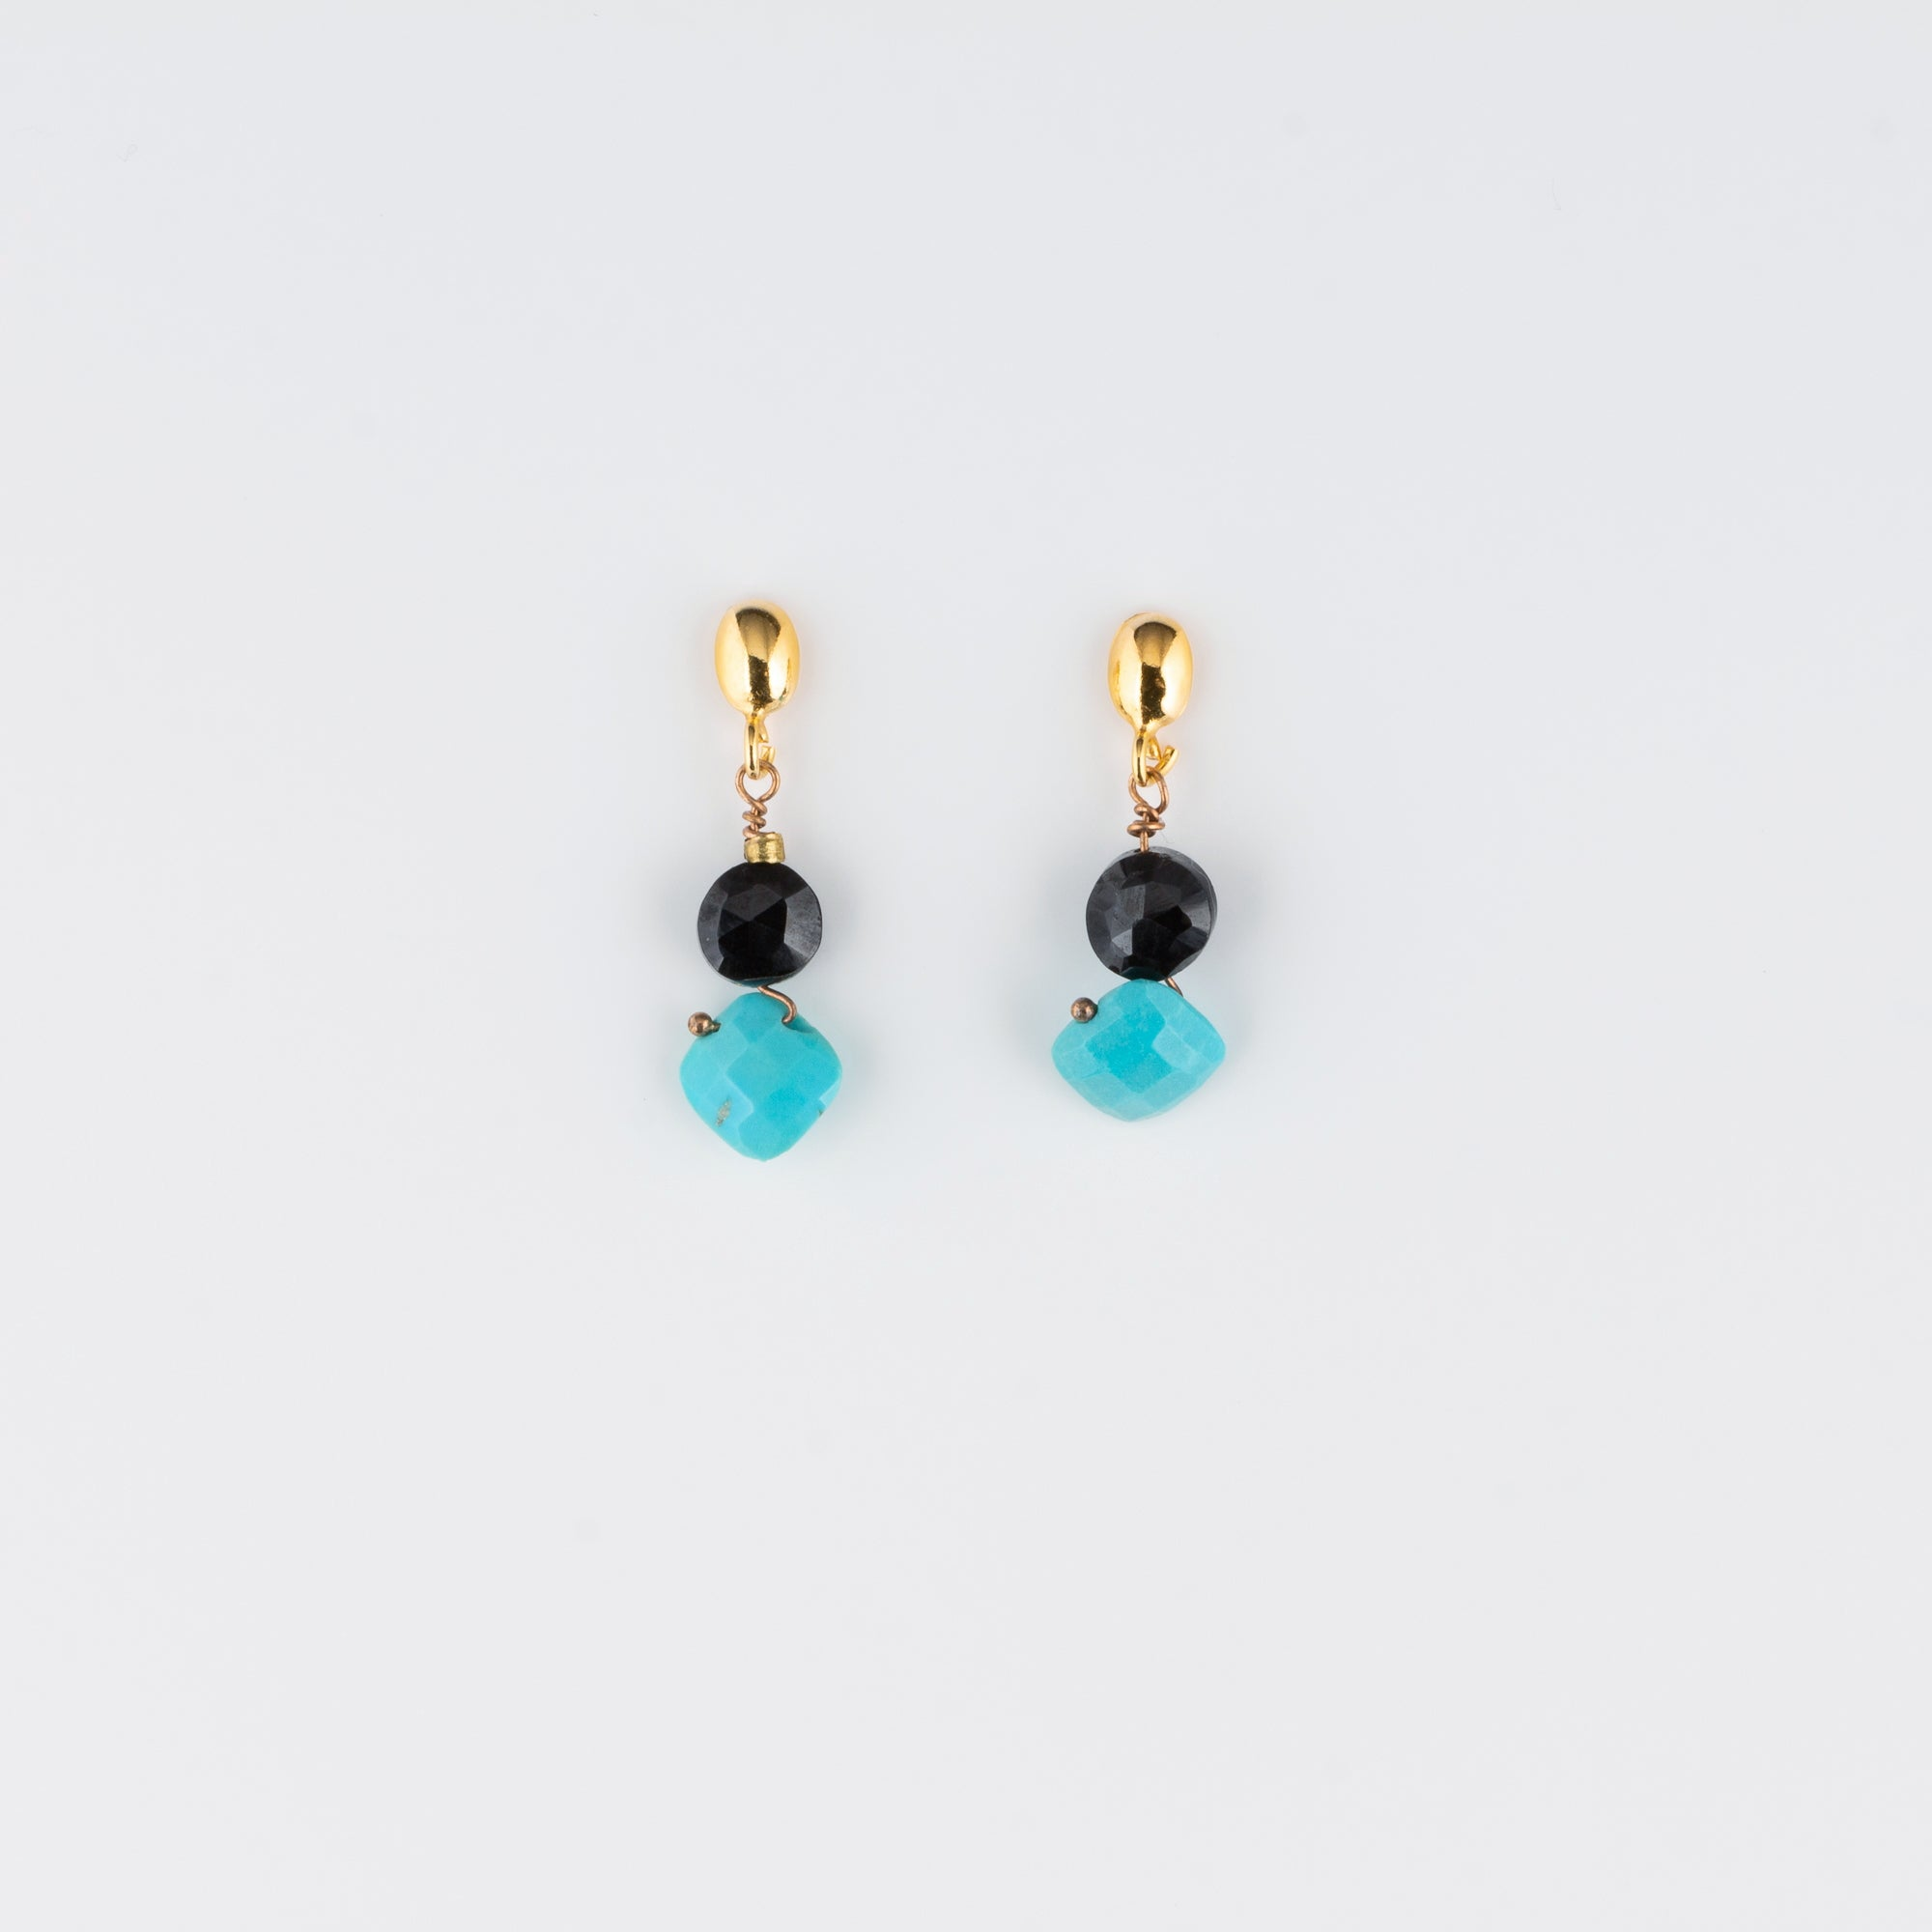 VERMEIL POST EARRINGS // TURQUOISE & SPINEL